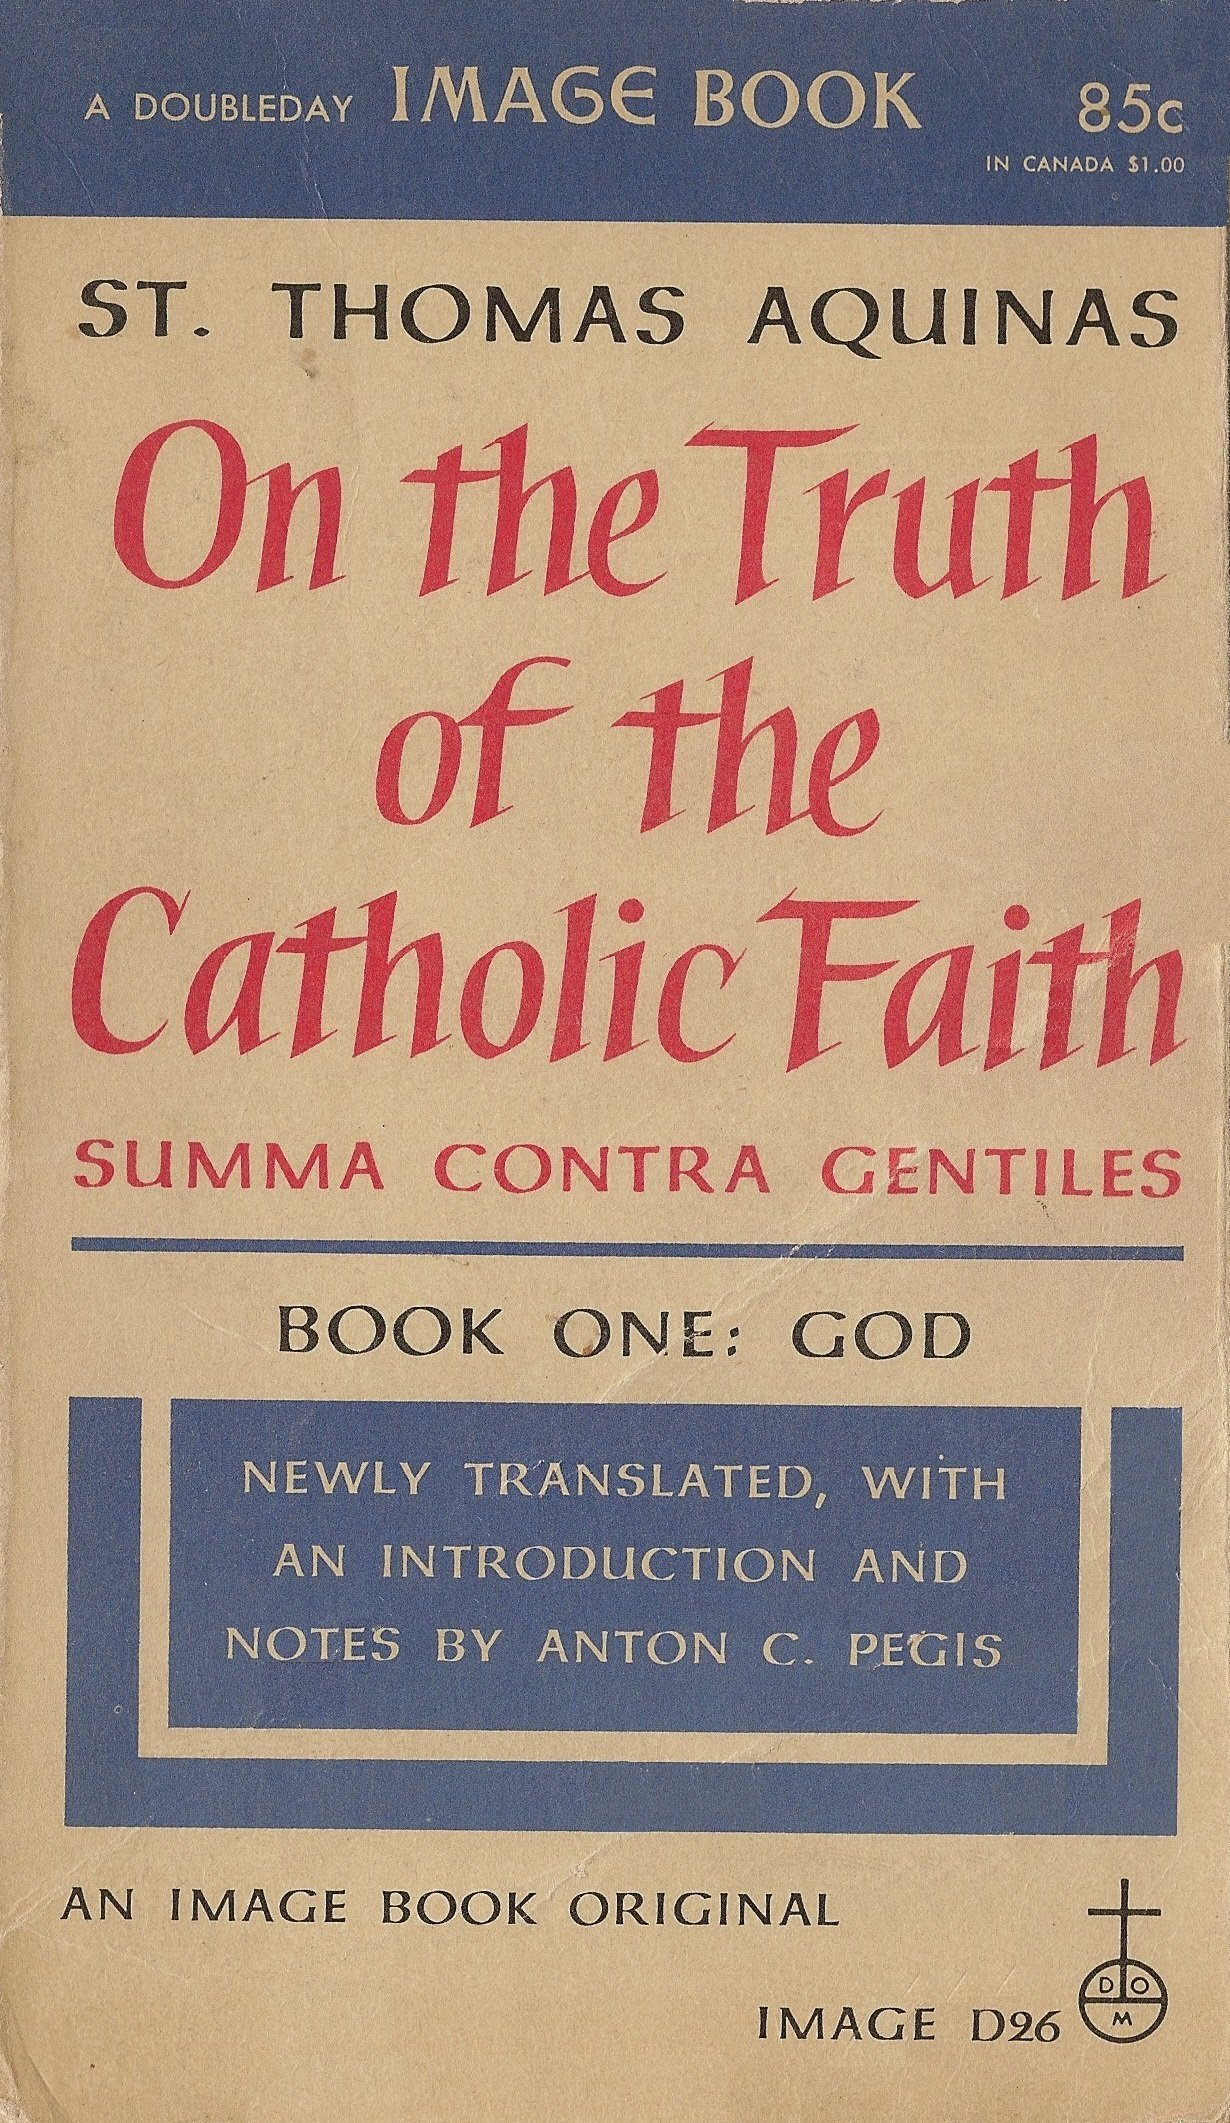 On the truth of the Catholic faith = Summa contra gentiles. Book three: Providence, part 2